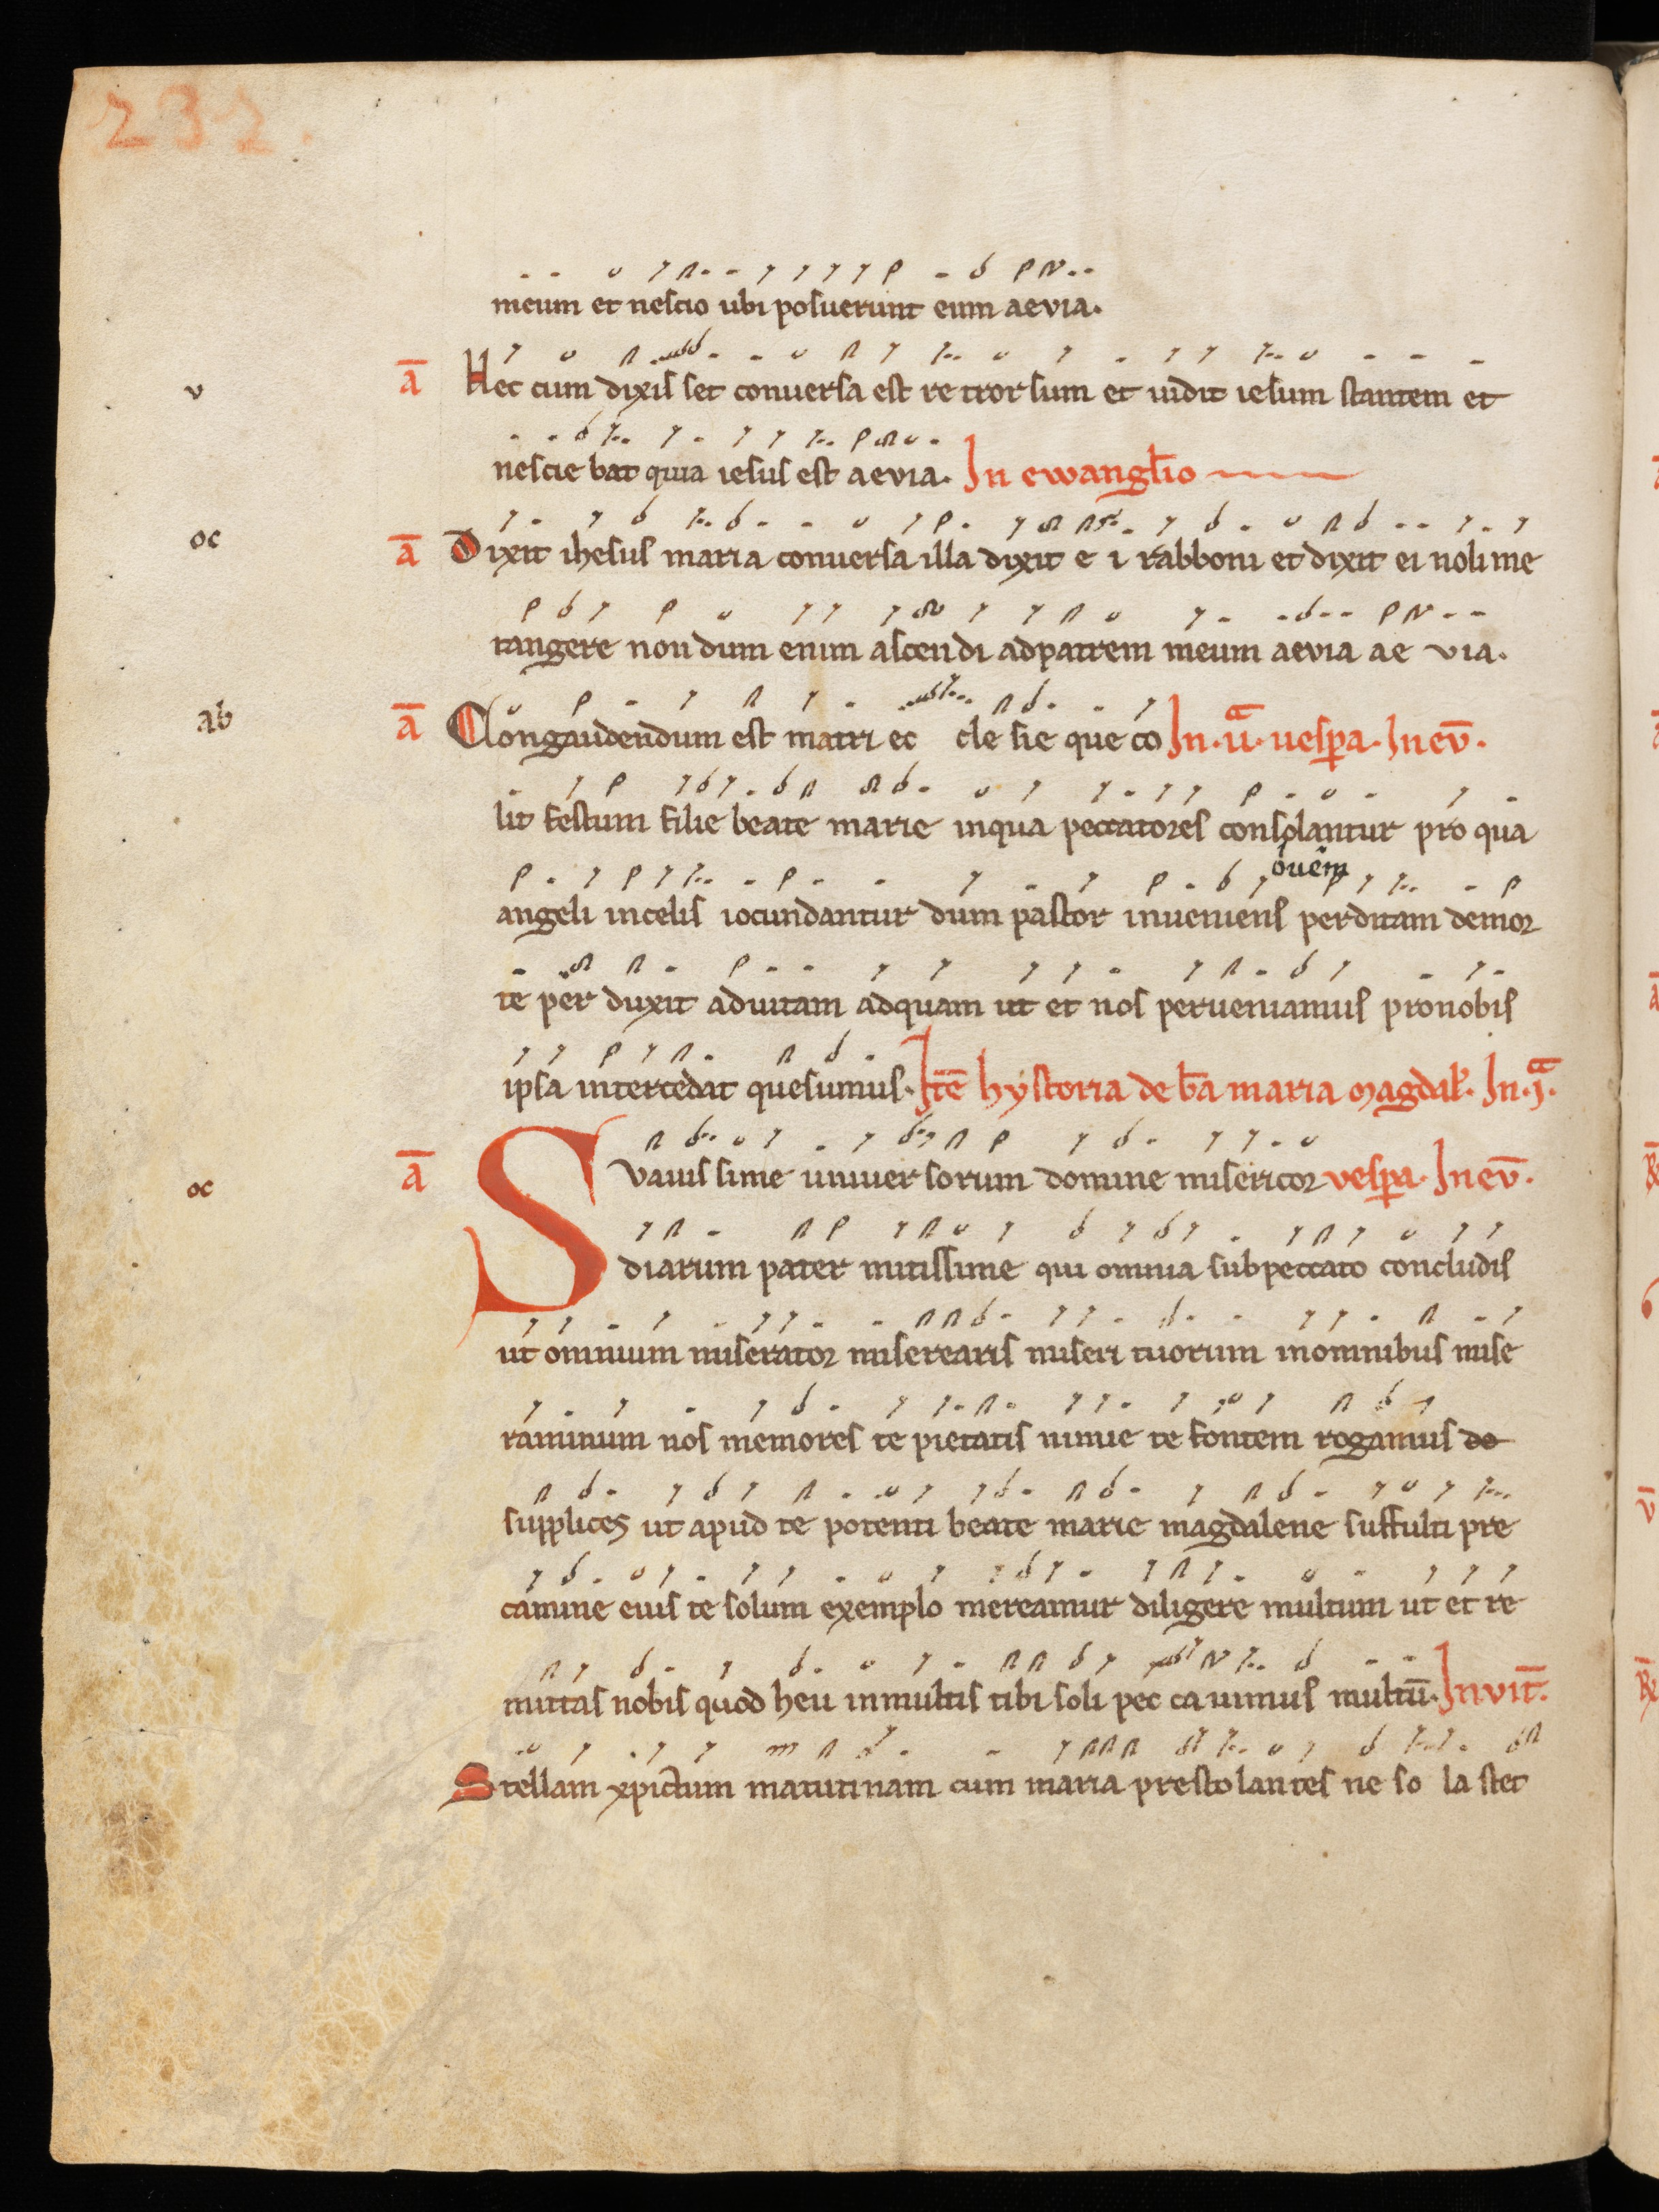 Beginning of Suavissime universorum Domine within the manuscript St. Gallen, Stiftsbibl., Cod. Sang. 389, p. 232.